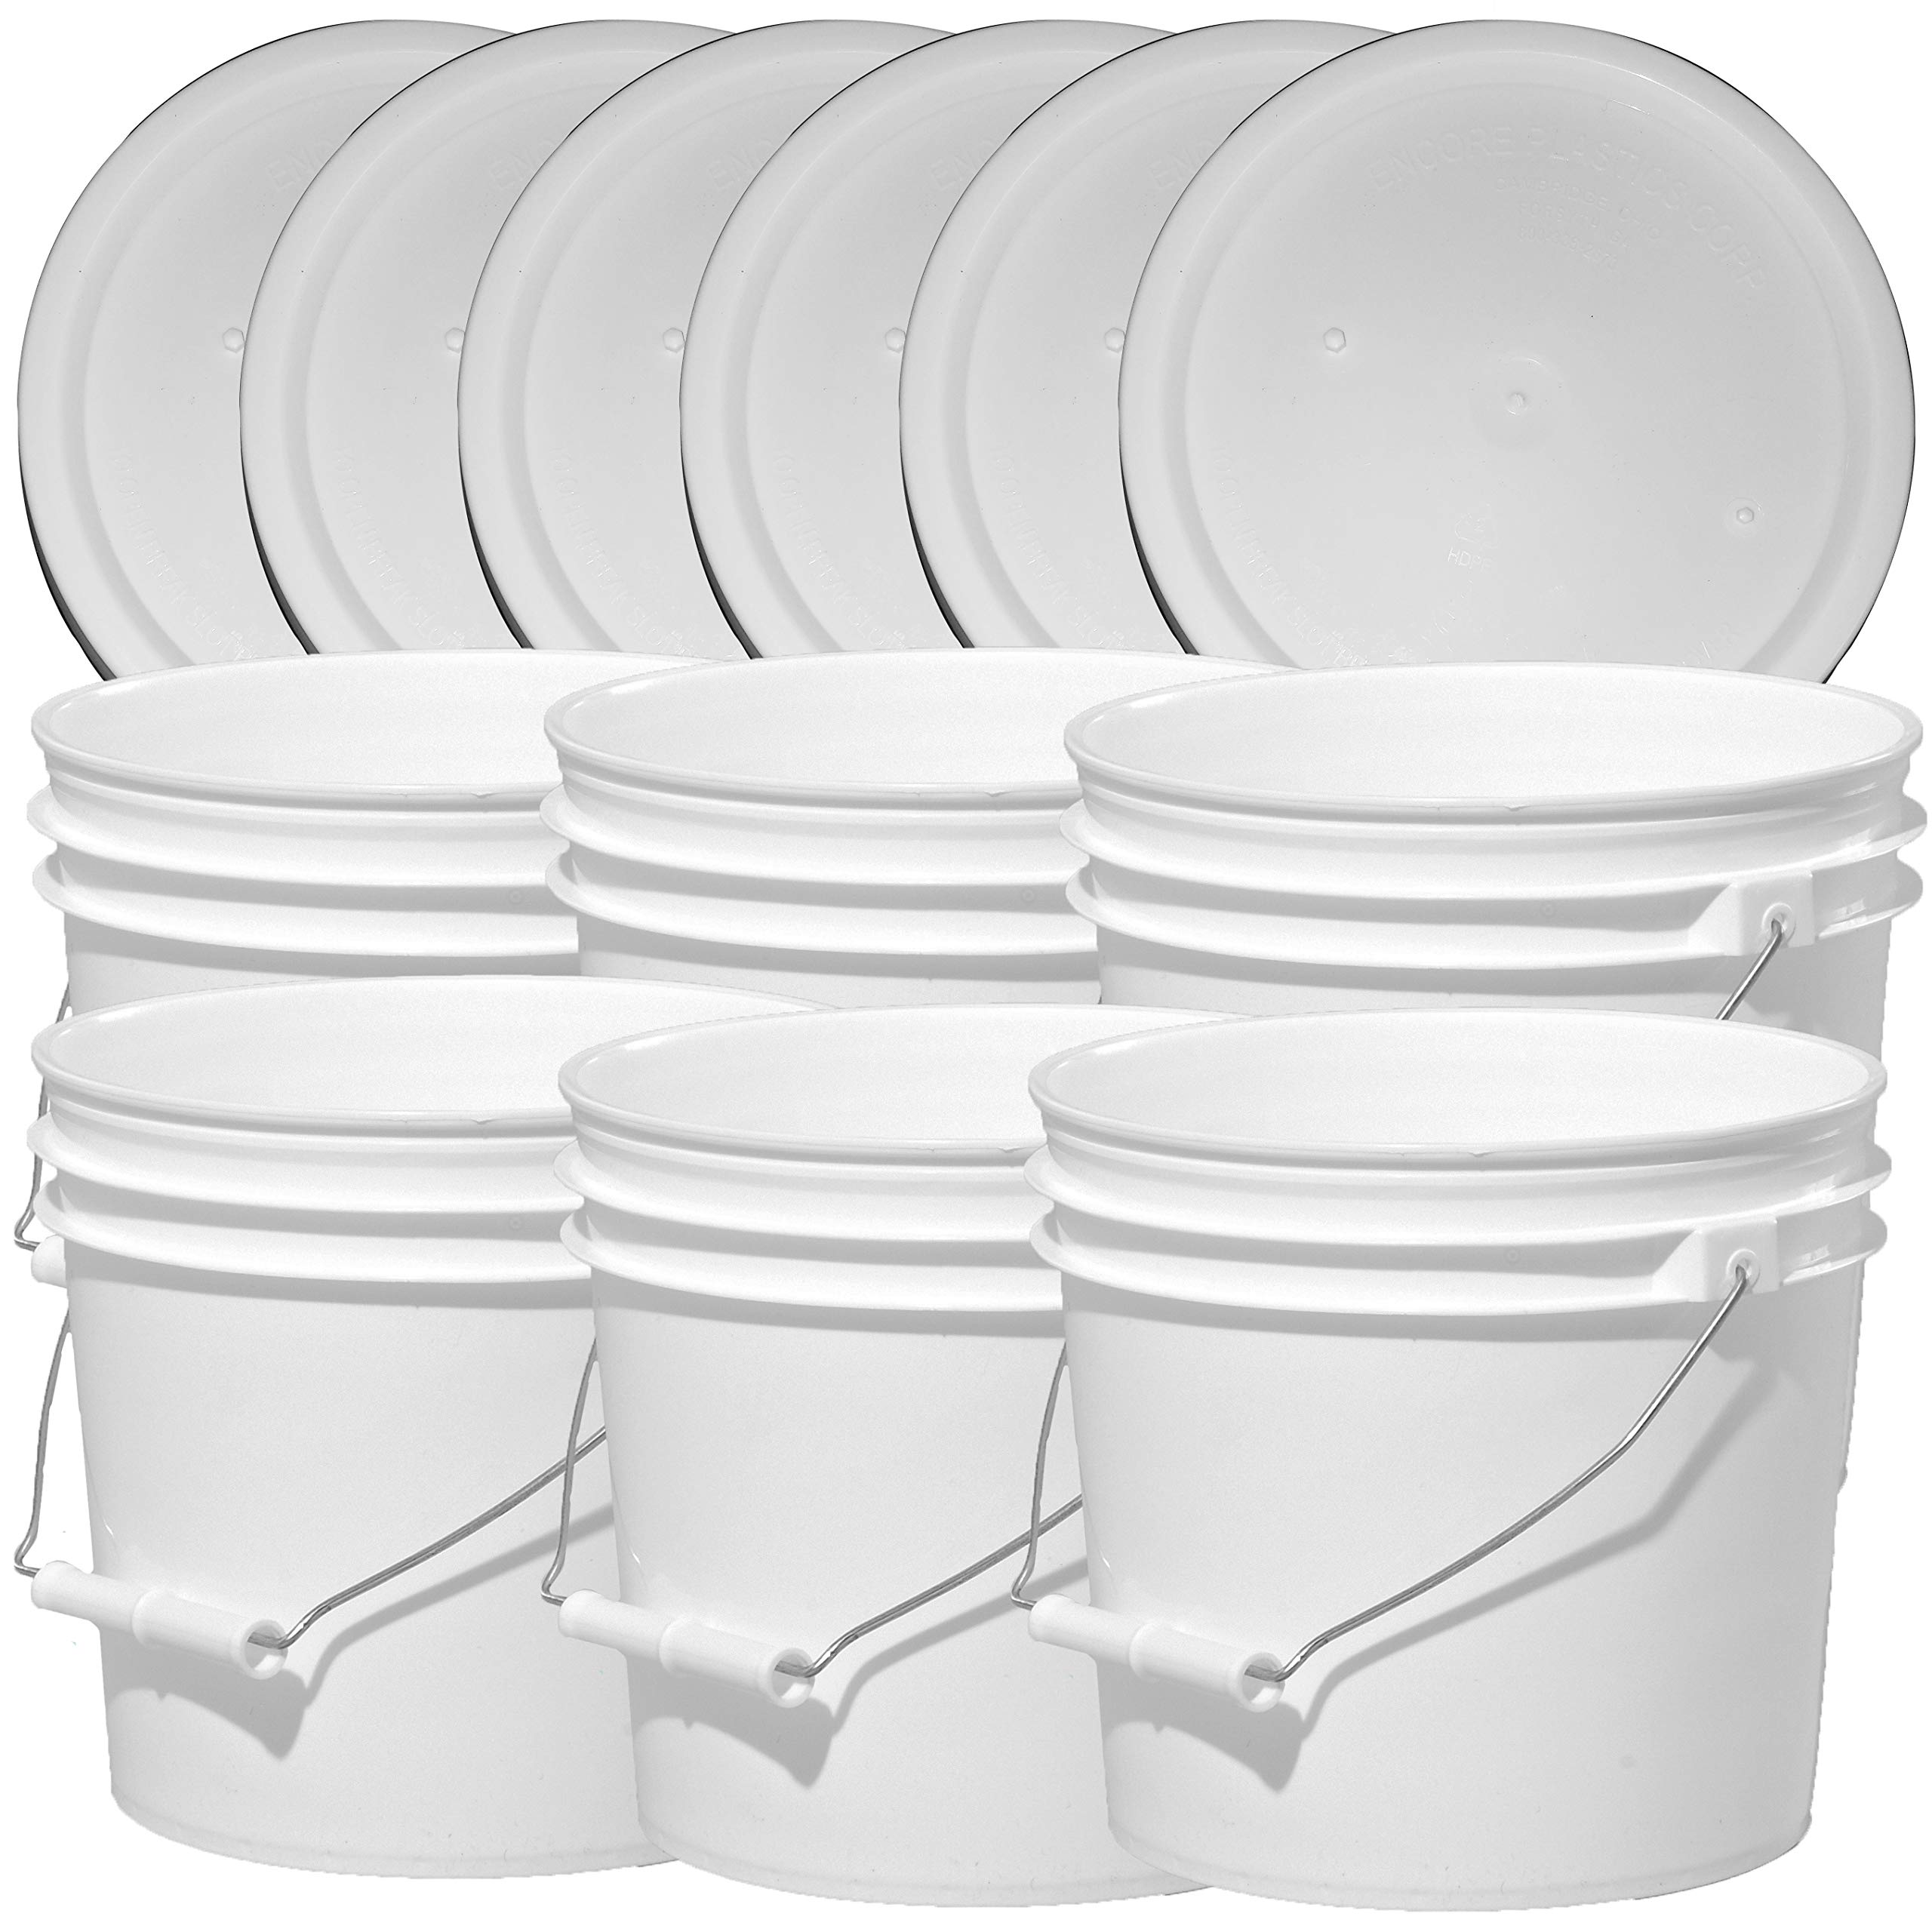 Illing Company Premium 1 Gallon Bucket, HDPE, White, 6 Pack with Matching Lids